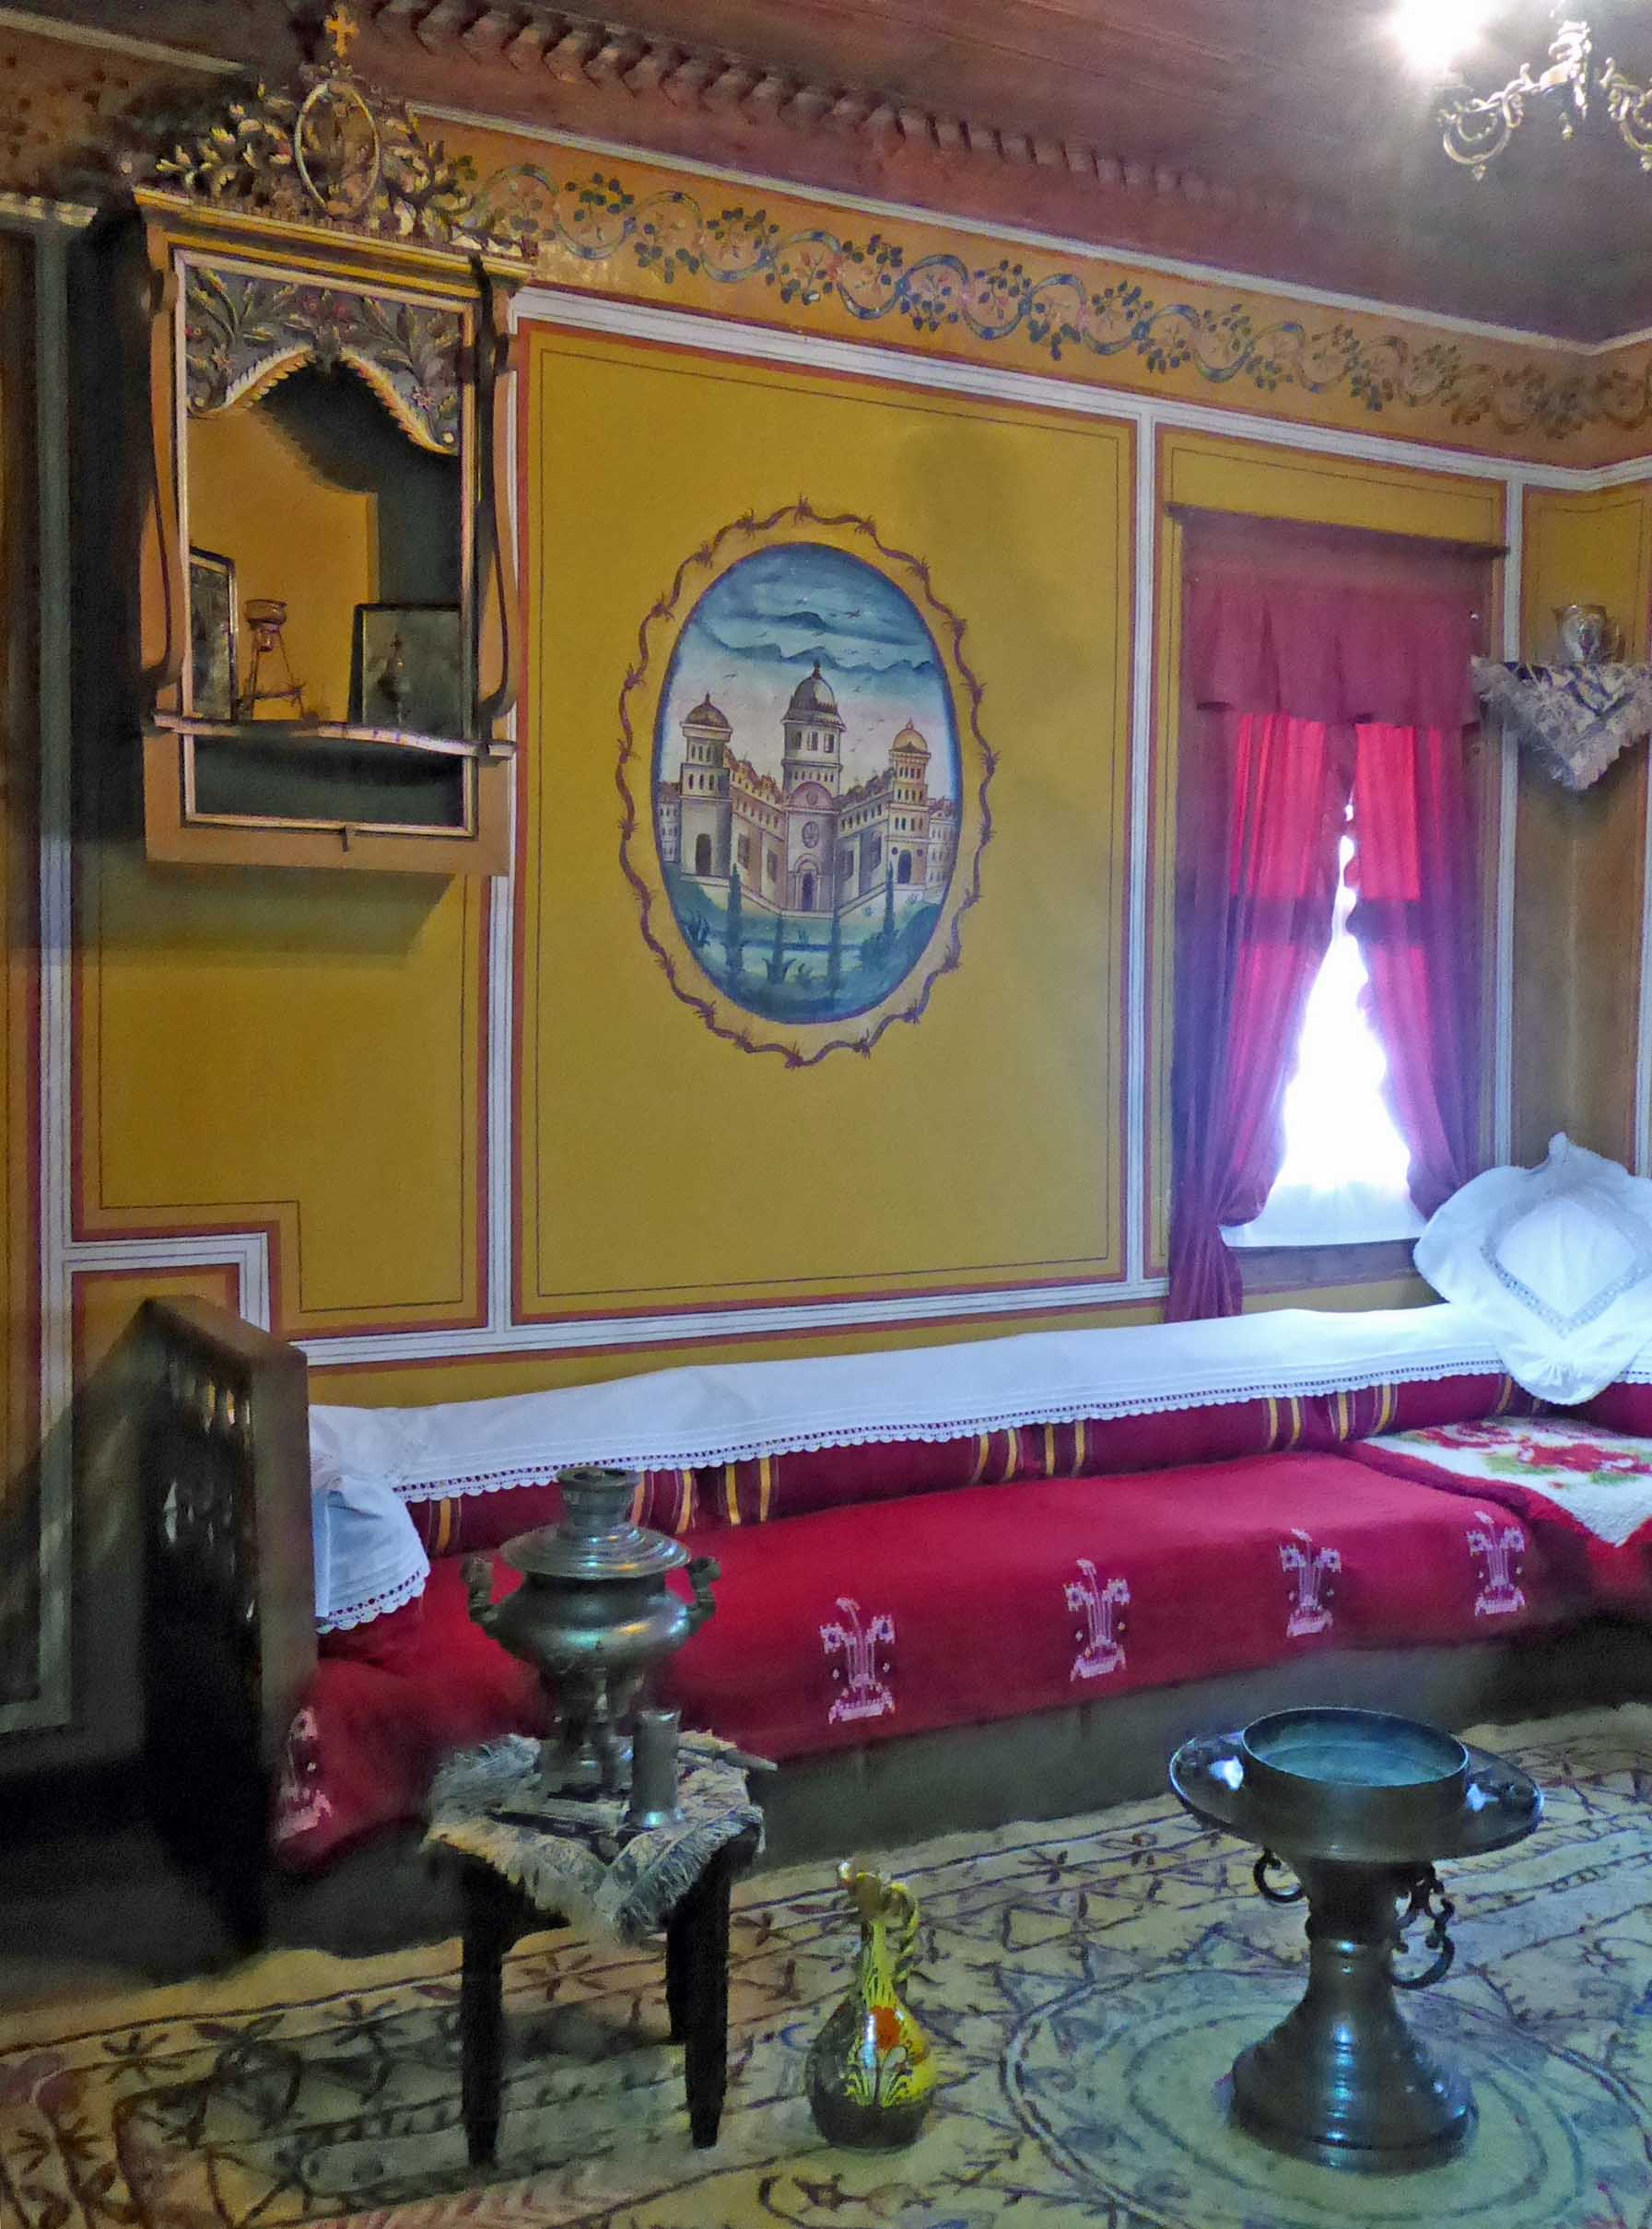 Room with painted yellow walls and red bench